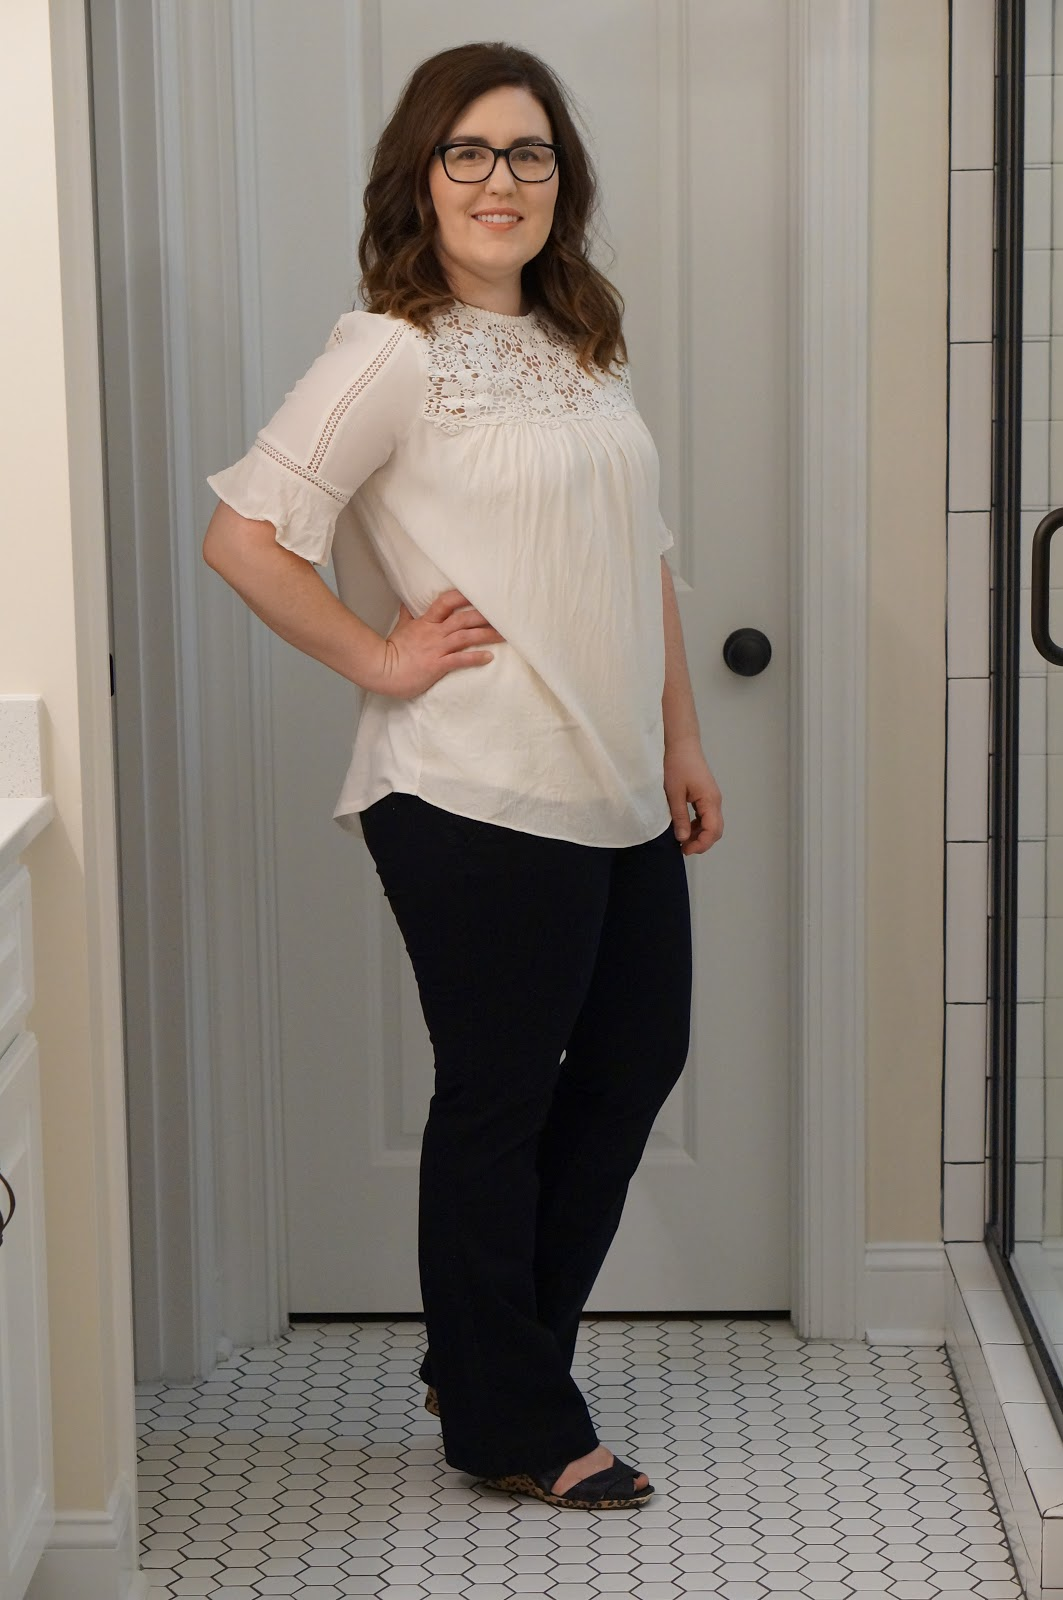 Rebecca Lately Transitional Fall Styles Loft Lace Yoke Top Old Navy Mid-Rise Khakis - FALL FASHION by North Carolina fashion blogger Rebecca Lately